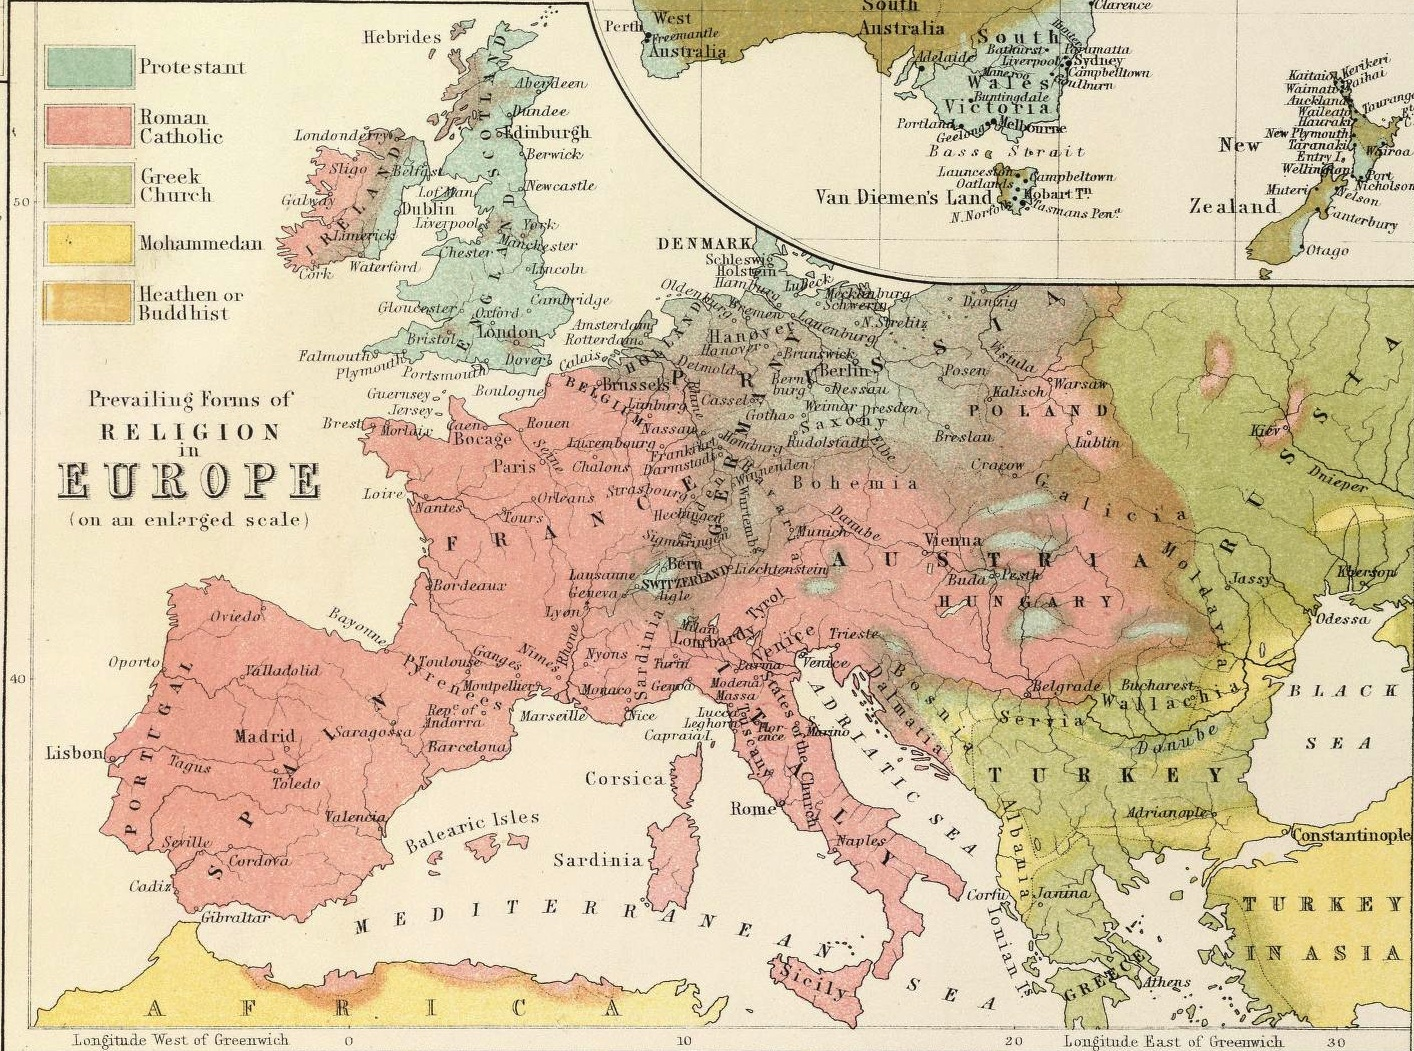 Religion map mid 19th century scottish map of world religion religionineuropedetail gumiabroncs